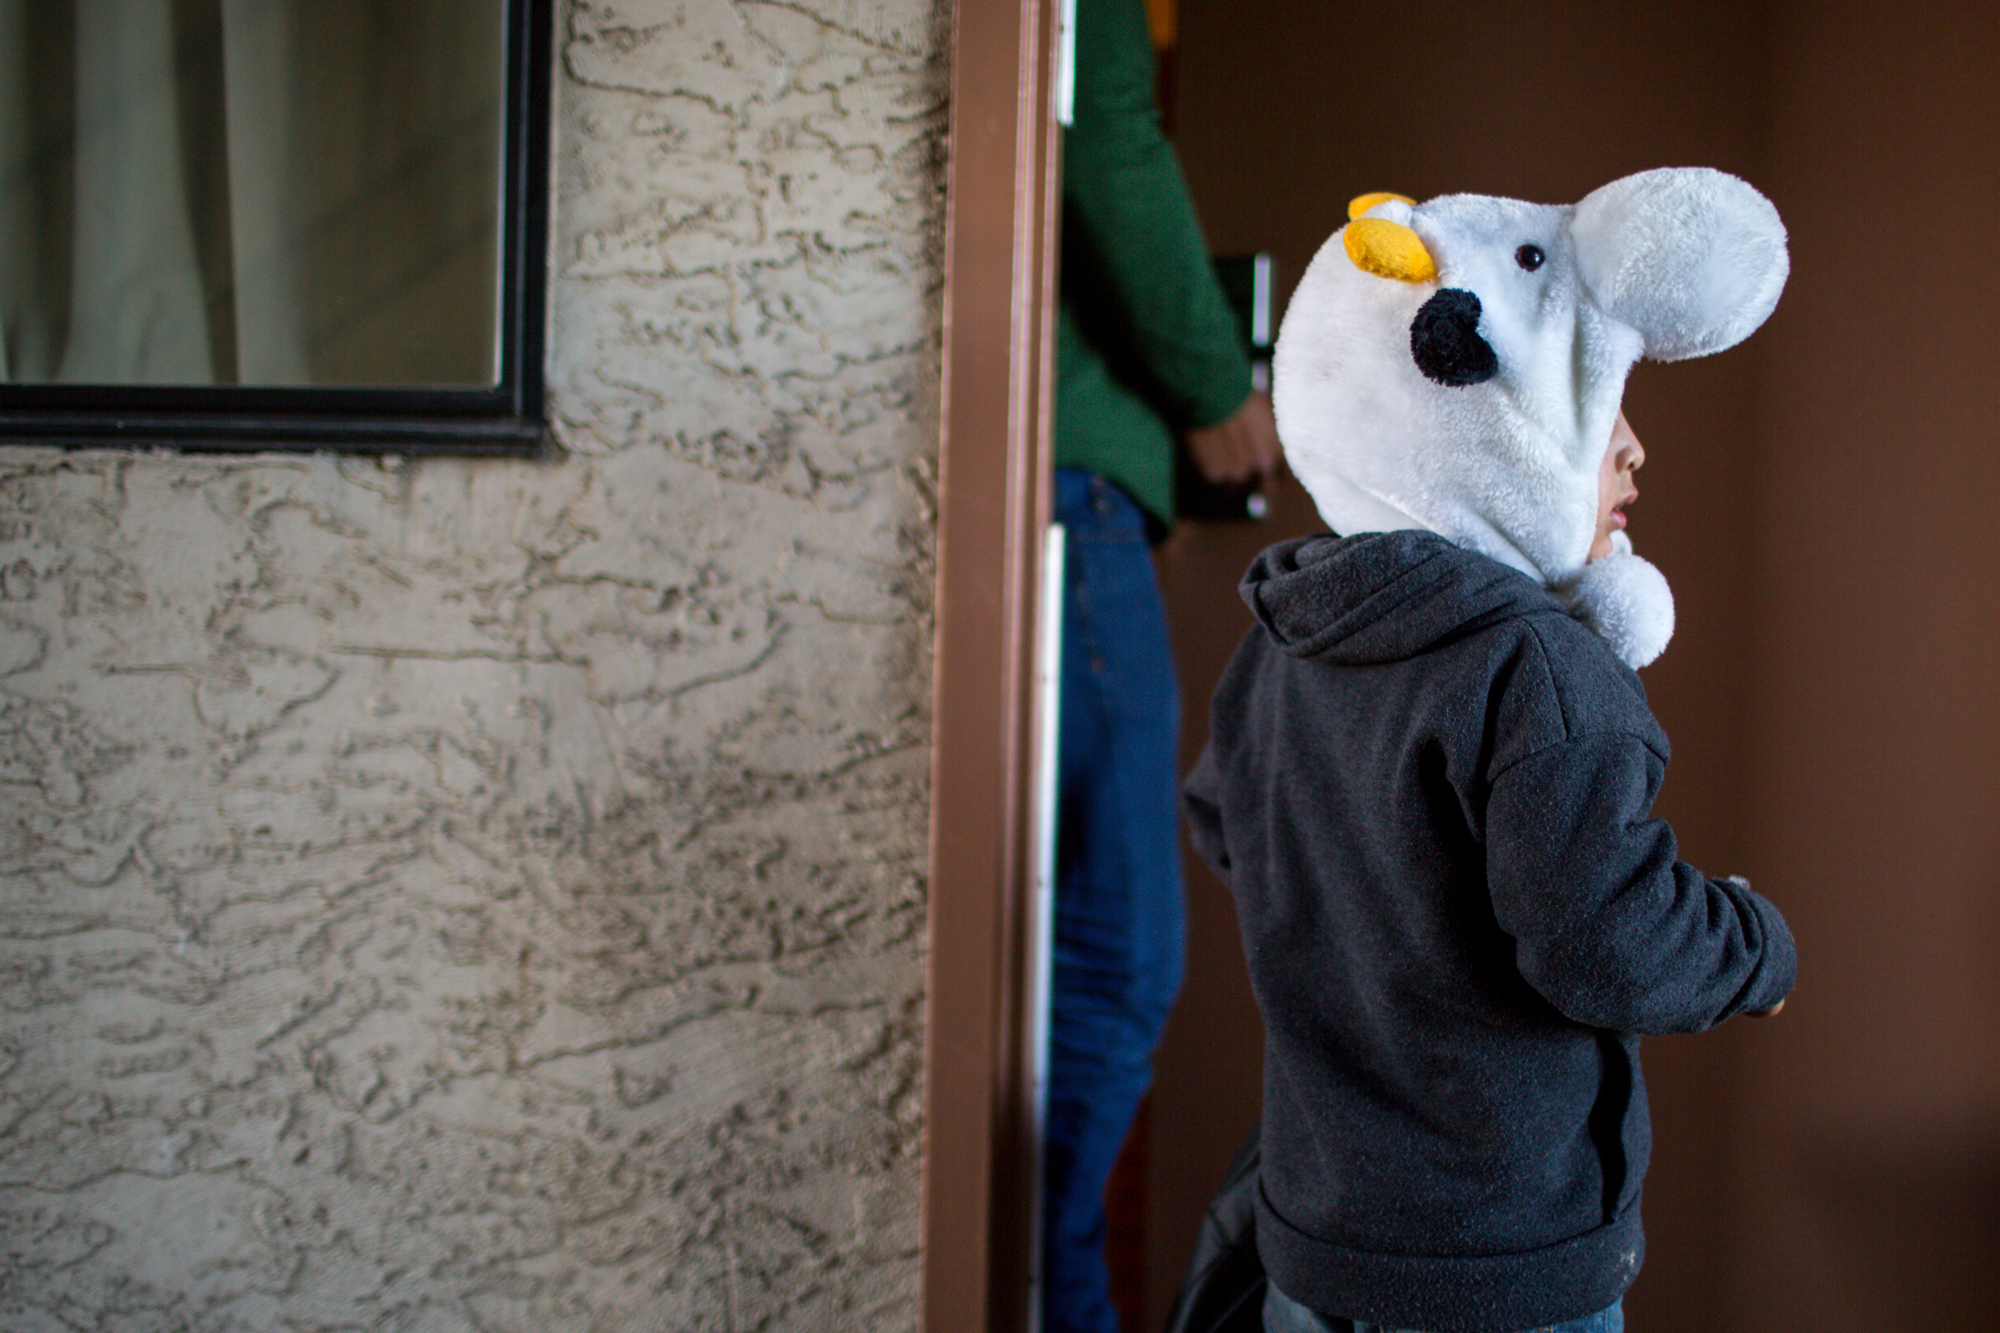 The migrants who traveled from Central America turned the motel into a  temporary neighborhood where children chased one another under stairwells.